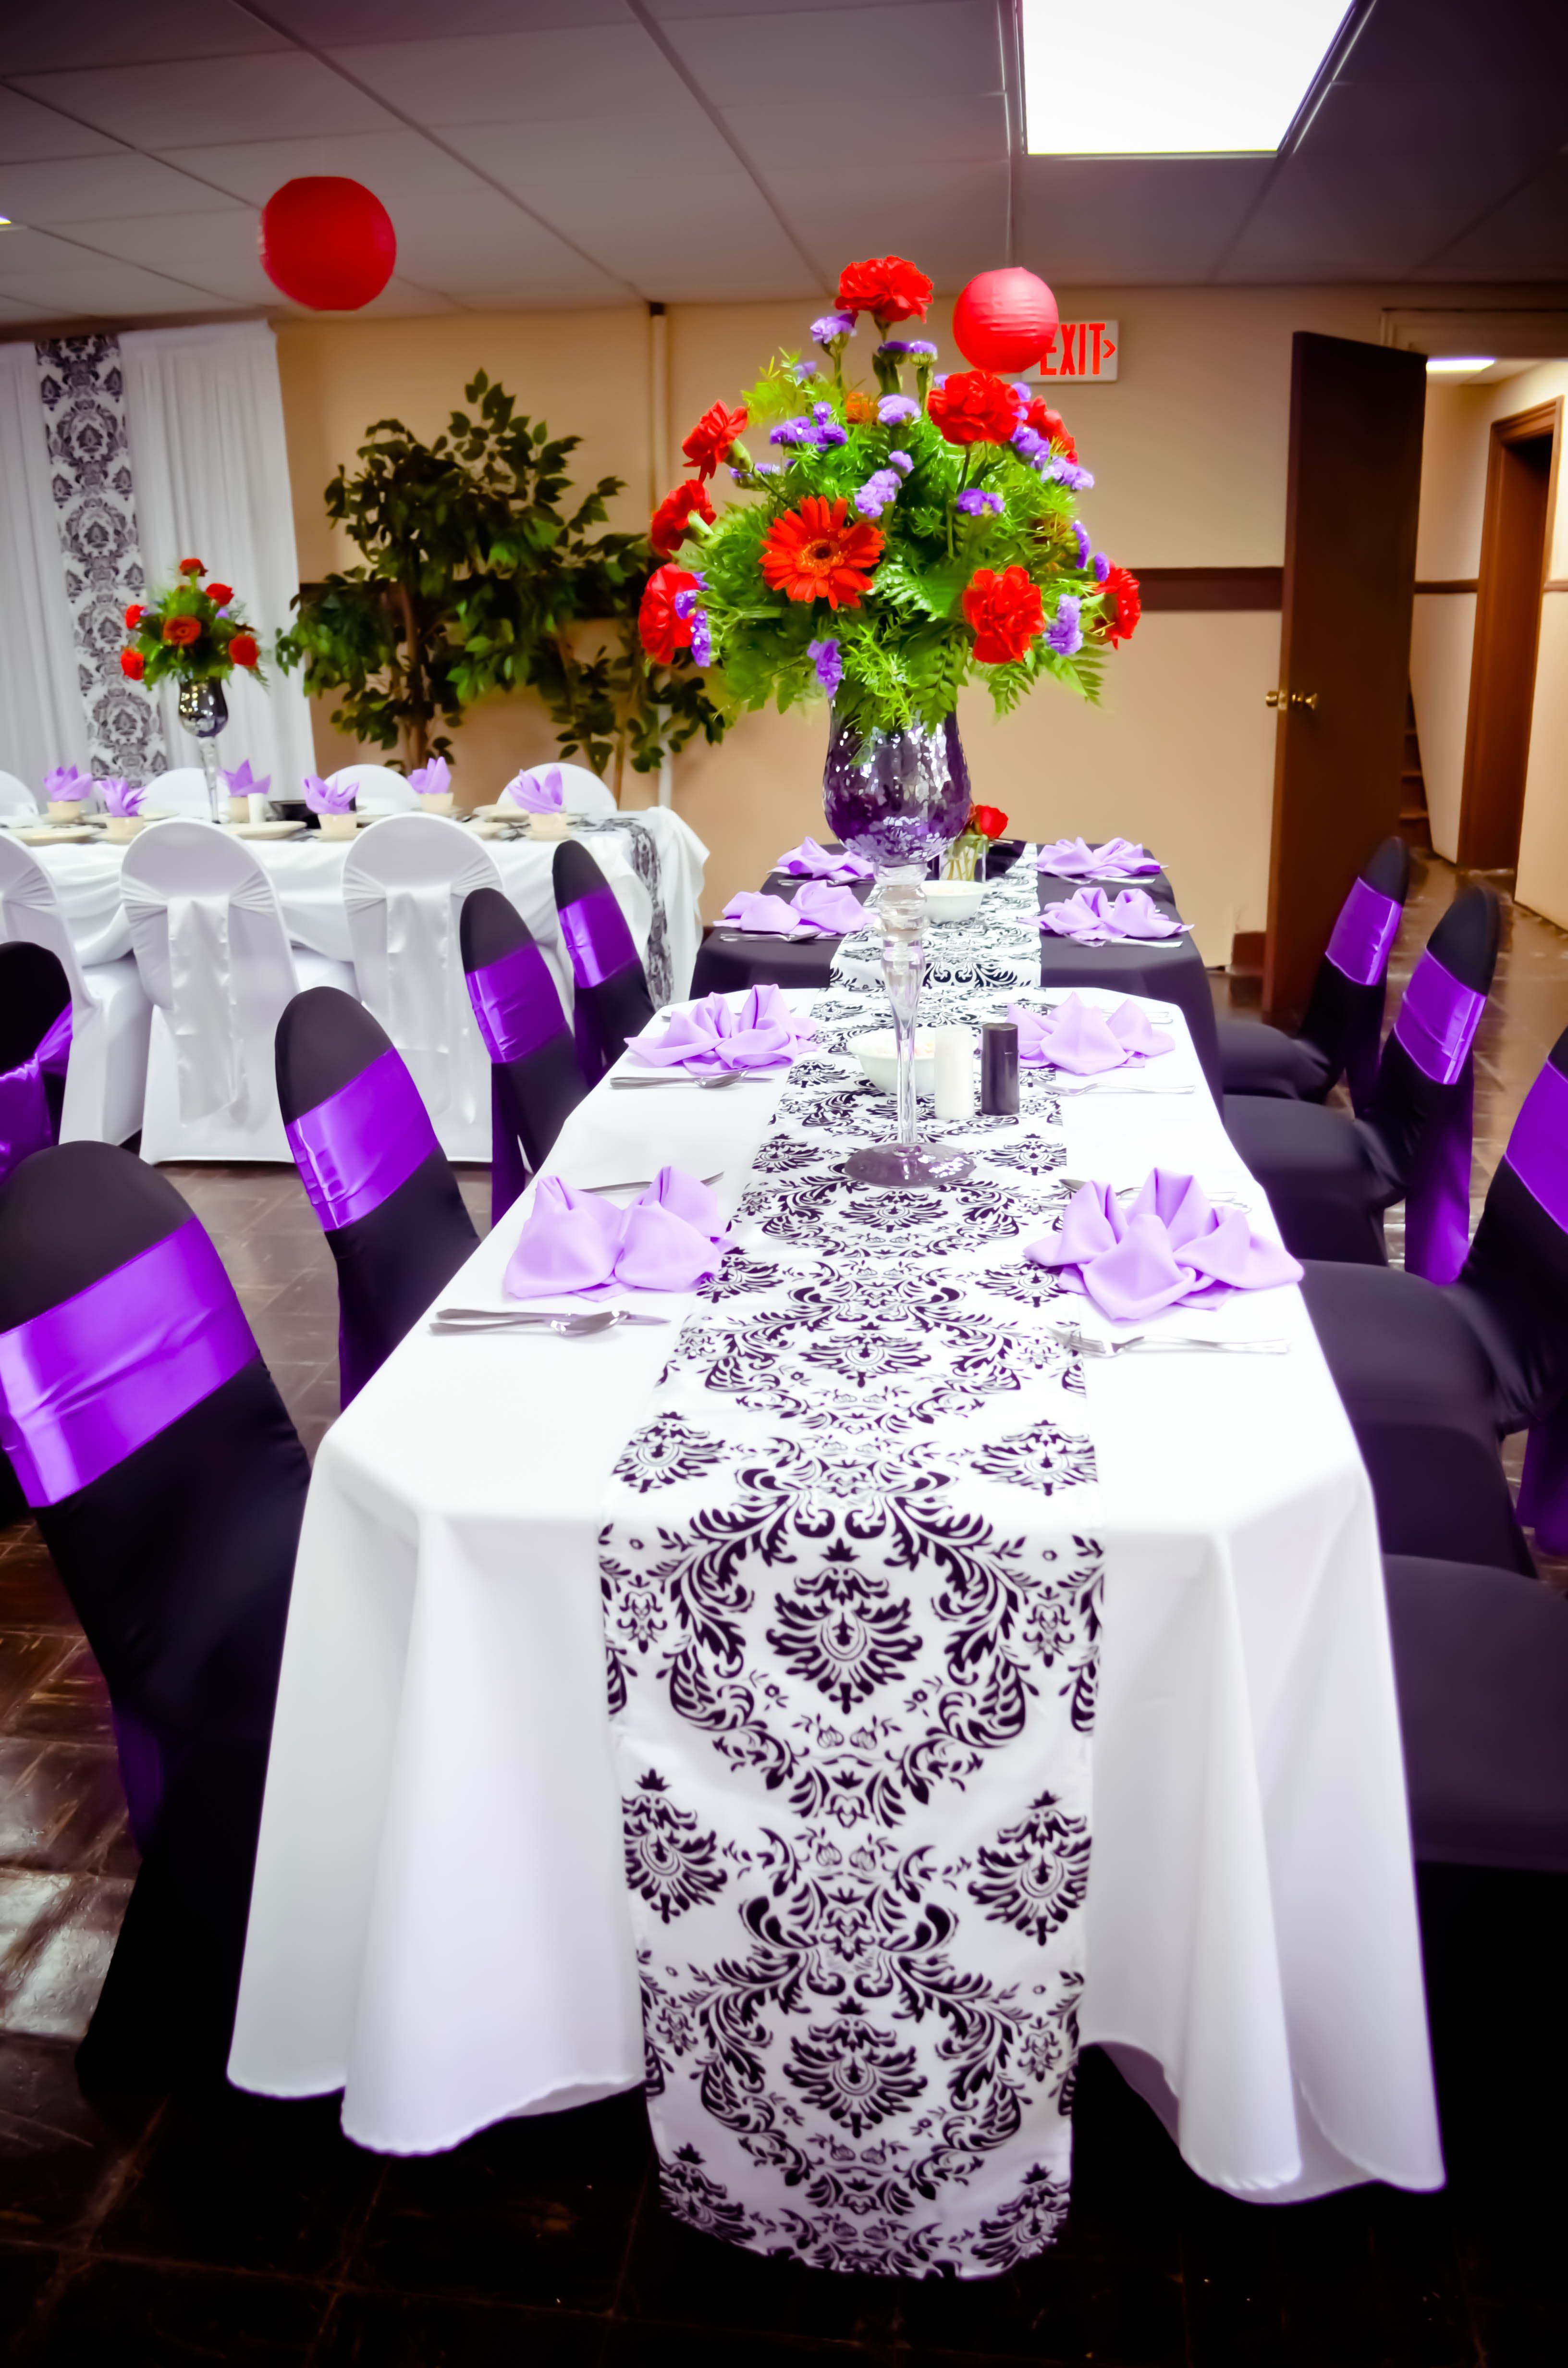 Astounding Event Black White Spandex Chair Covers Purple Satin Gmtry Best Dining Table And Chair Ideas Images Gmtryco